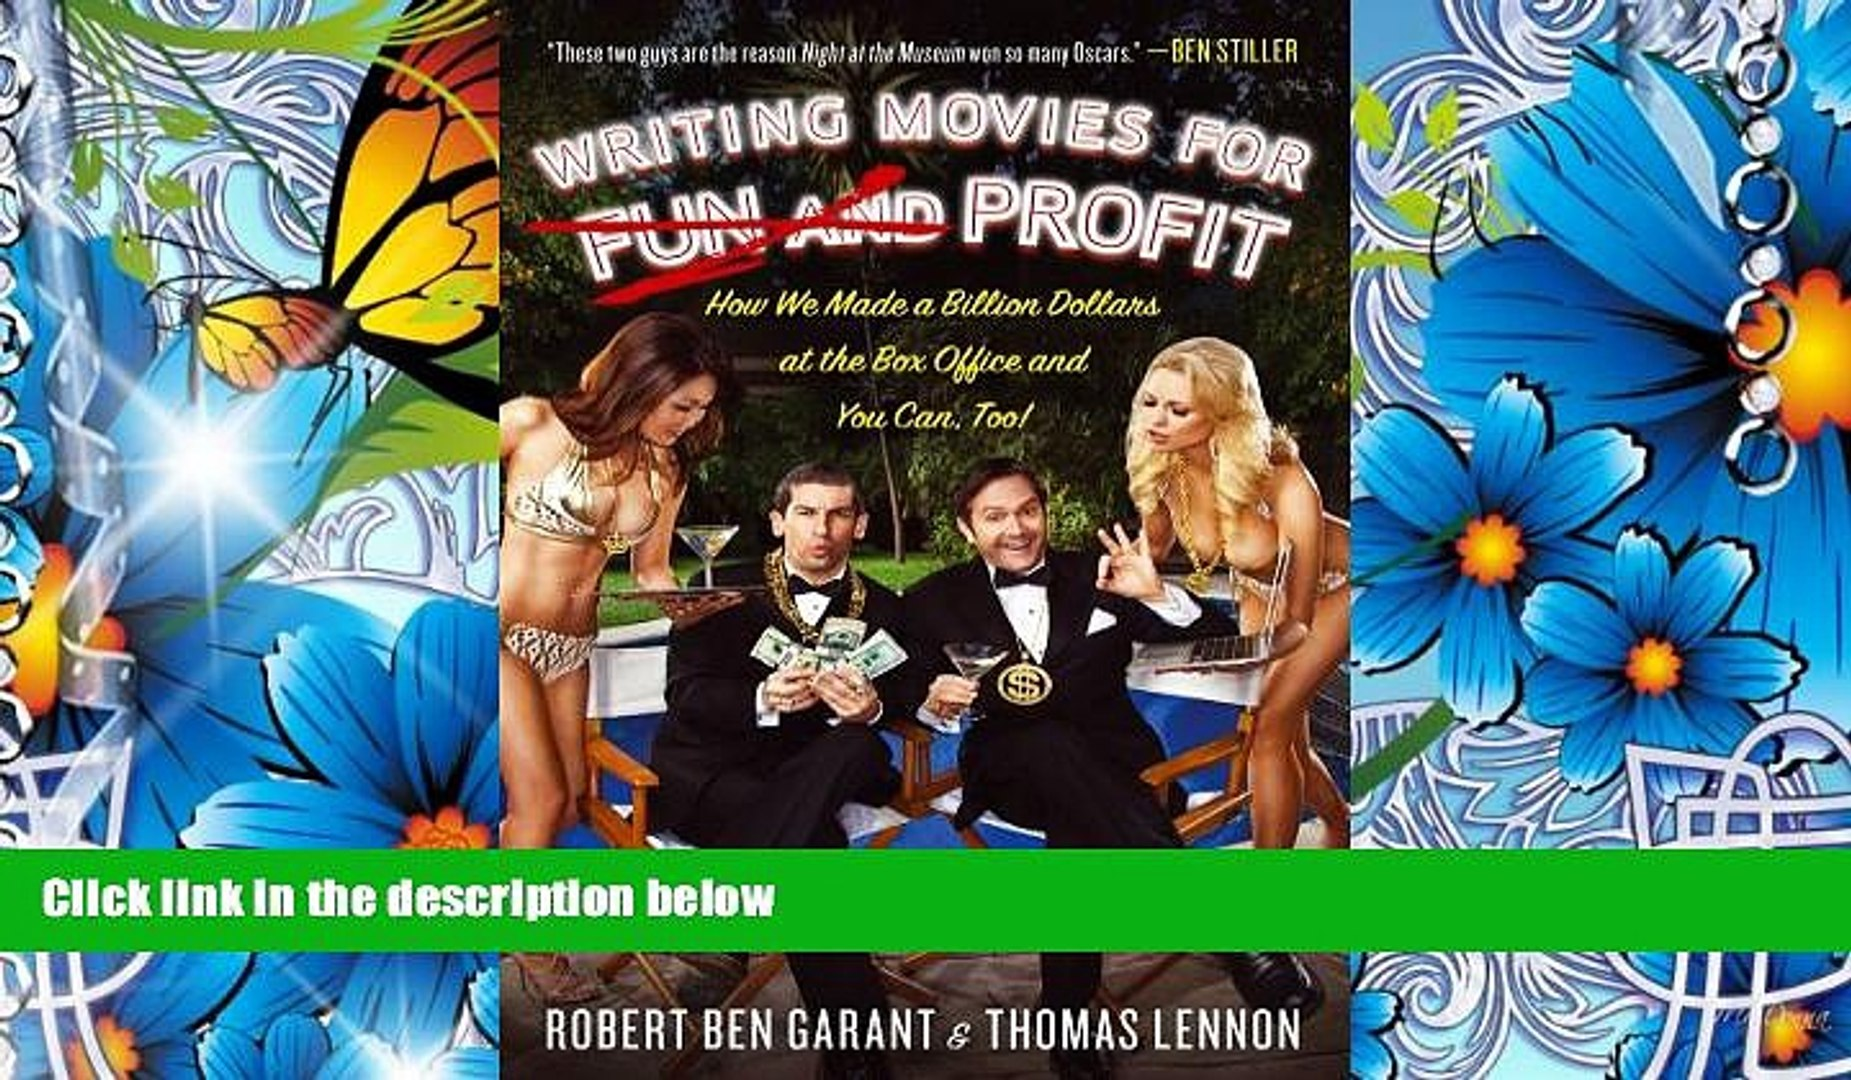 FREE [DOWNLOAD] Writing Movies for Fun and Profit: How We Made a Billion Dollars at the Box Office